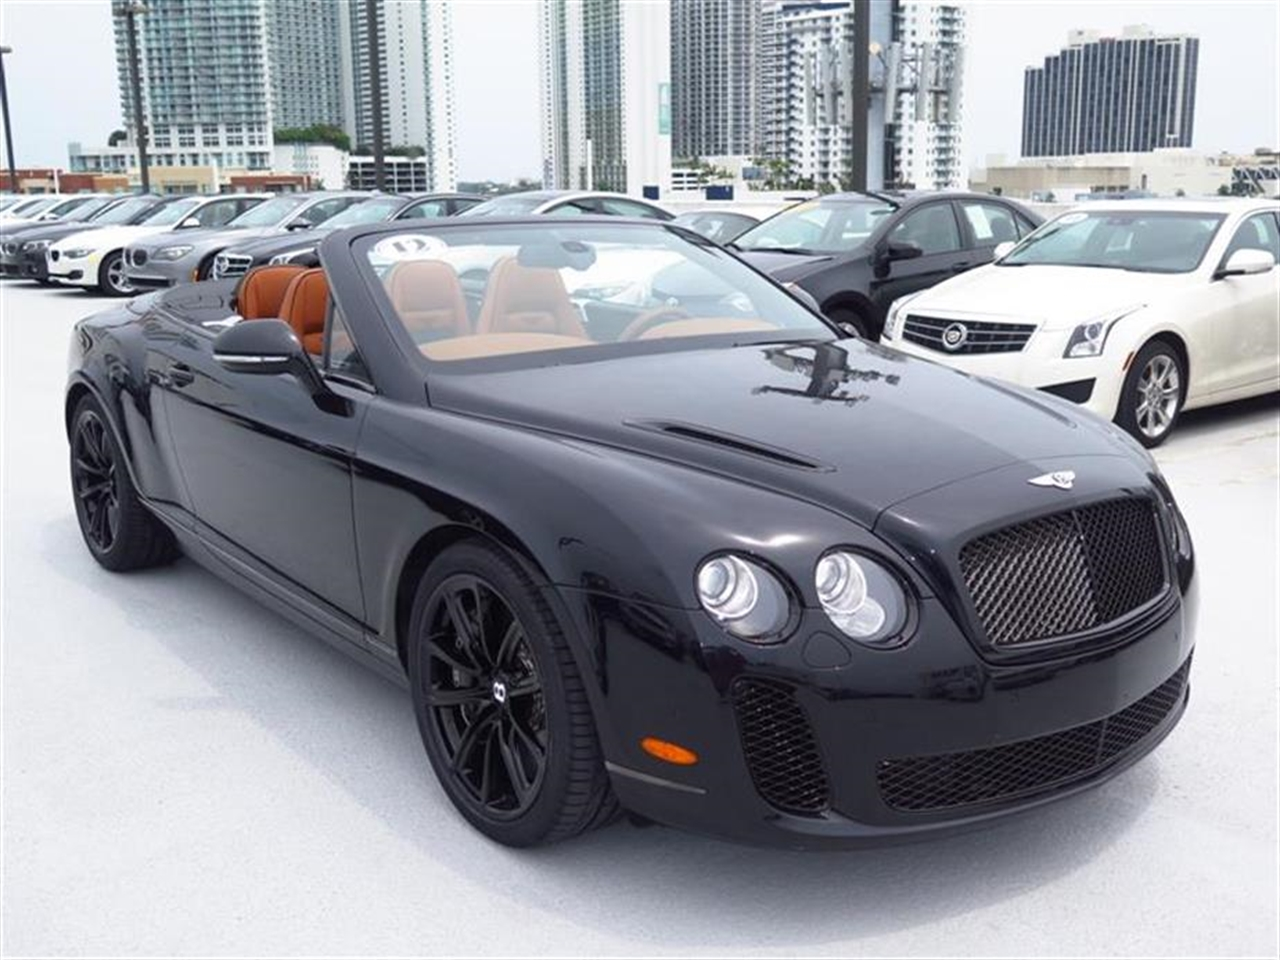 2012 BENTLEY CONTINENTAL GTC 2dr Conv Supersports 5296 miles 3-spoke single-tone leather multi-fu